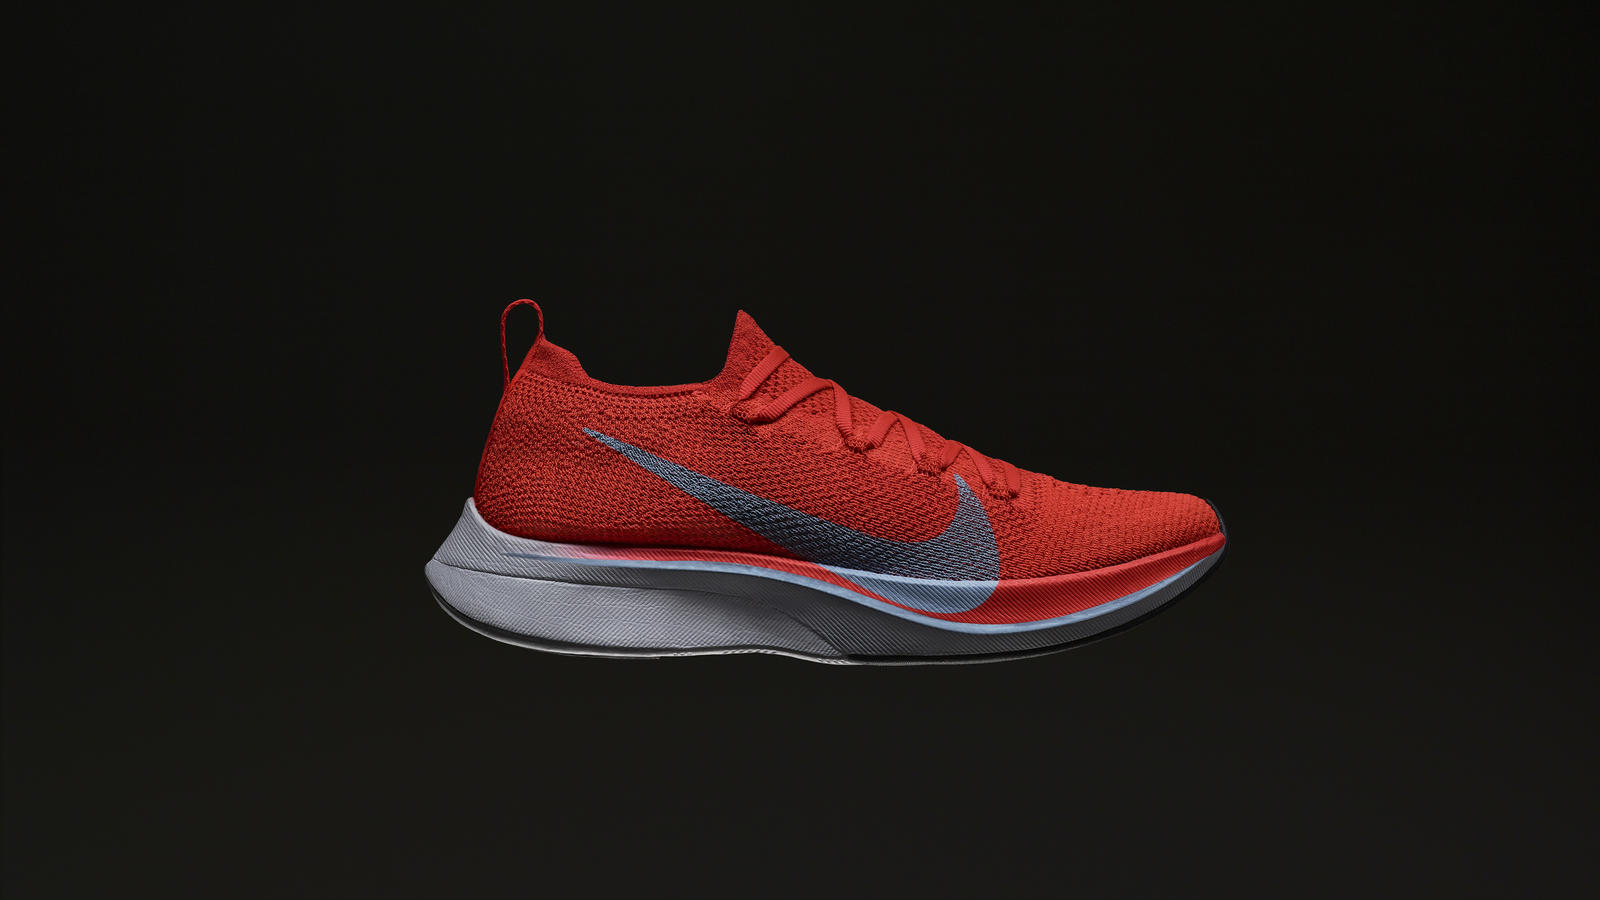 lowest price 3d122 bfc1e How to Get the Nike Zoom Vaporfly 4% 1